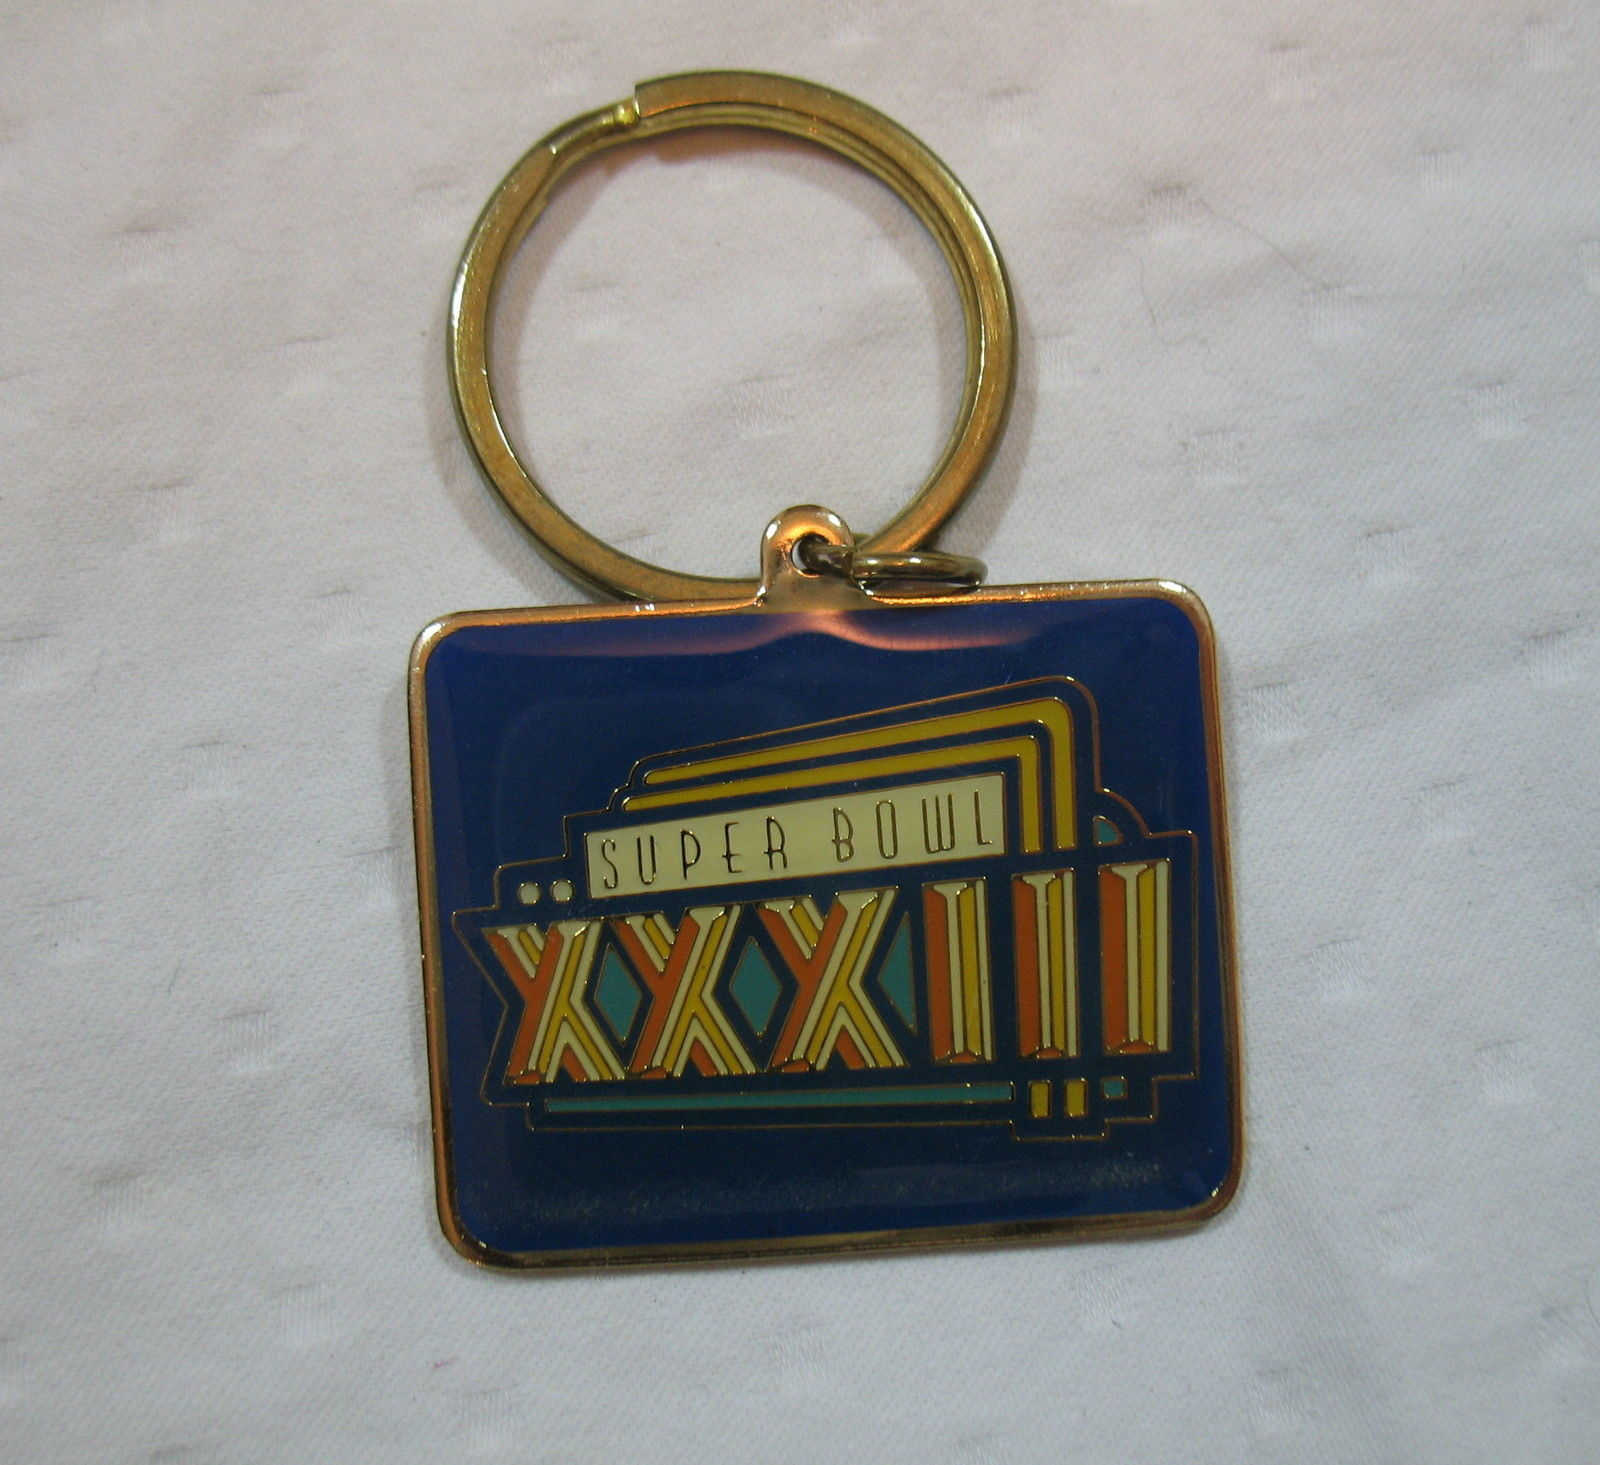 Super Bowl Key Chain XXXIII 33 Gold Tone UPS Preferred Customer Collectible